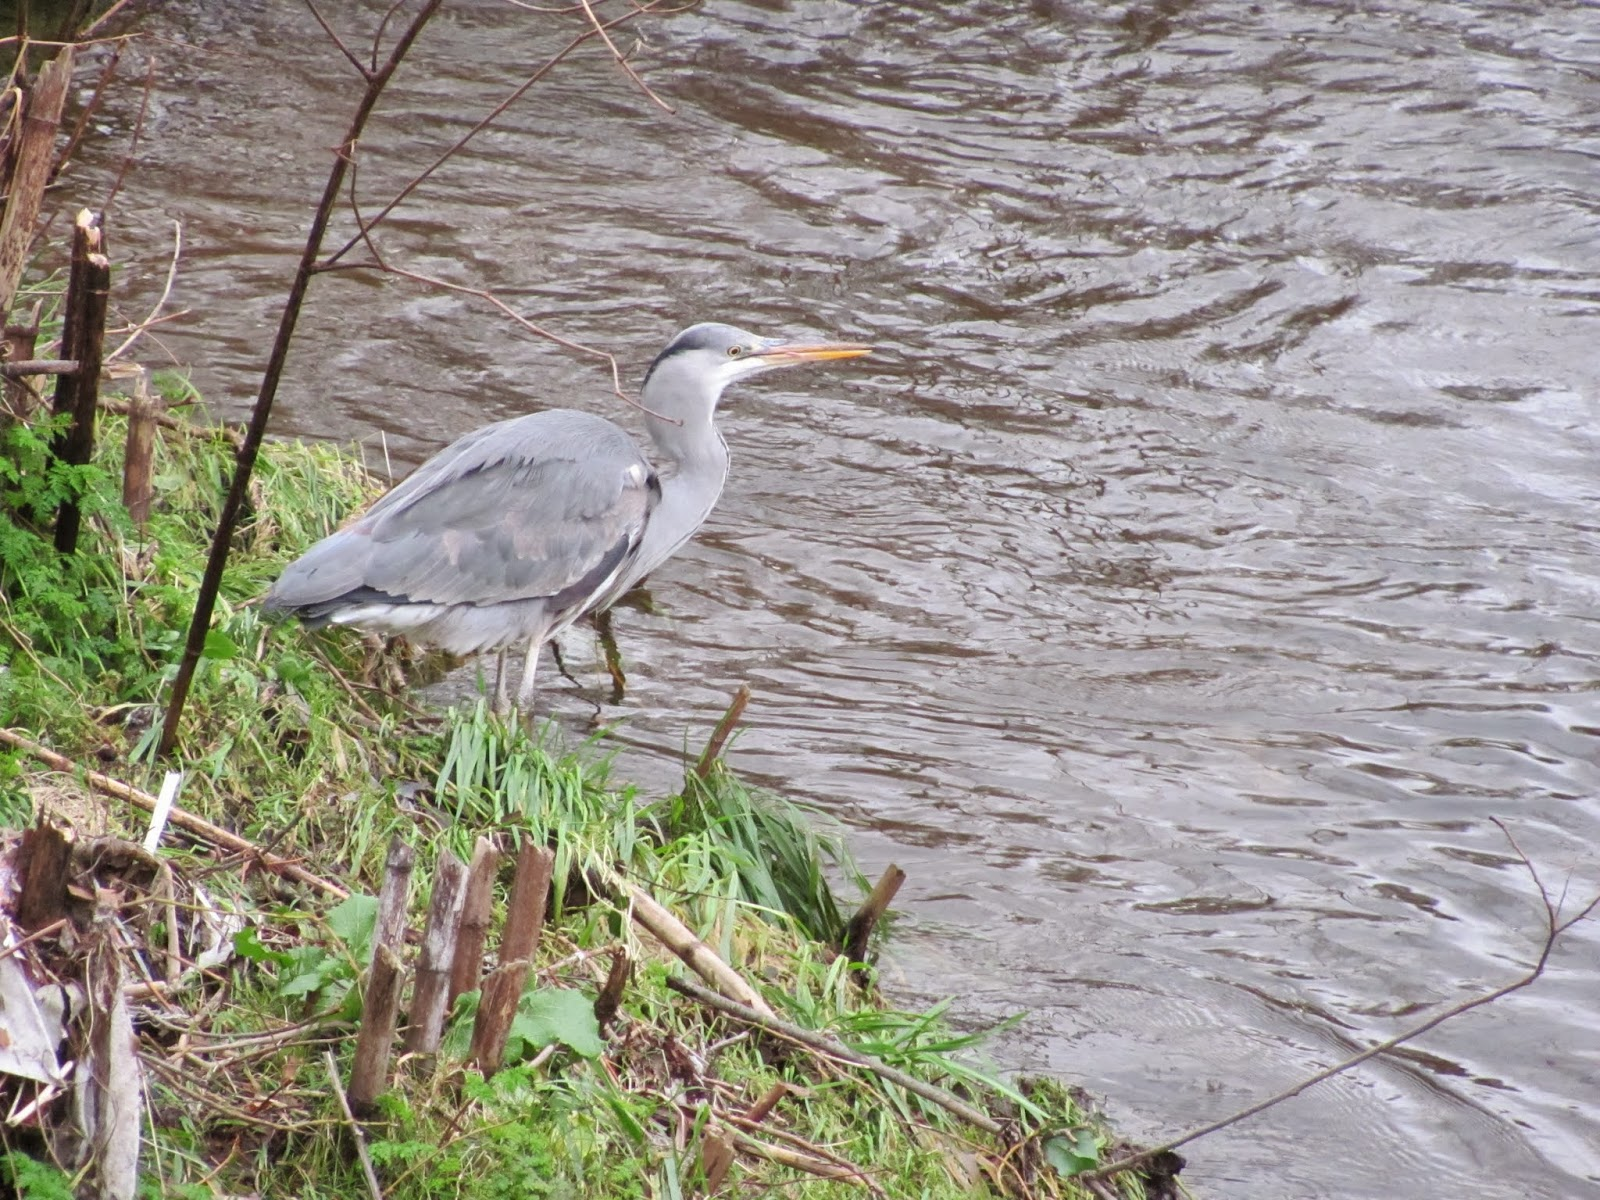 Heron on the Dodder in Dublin